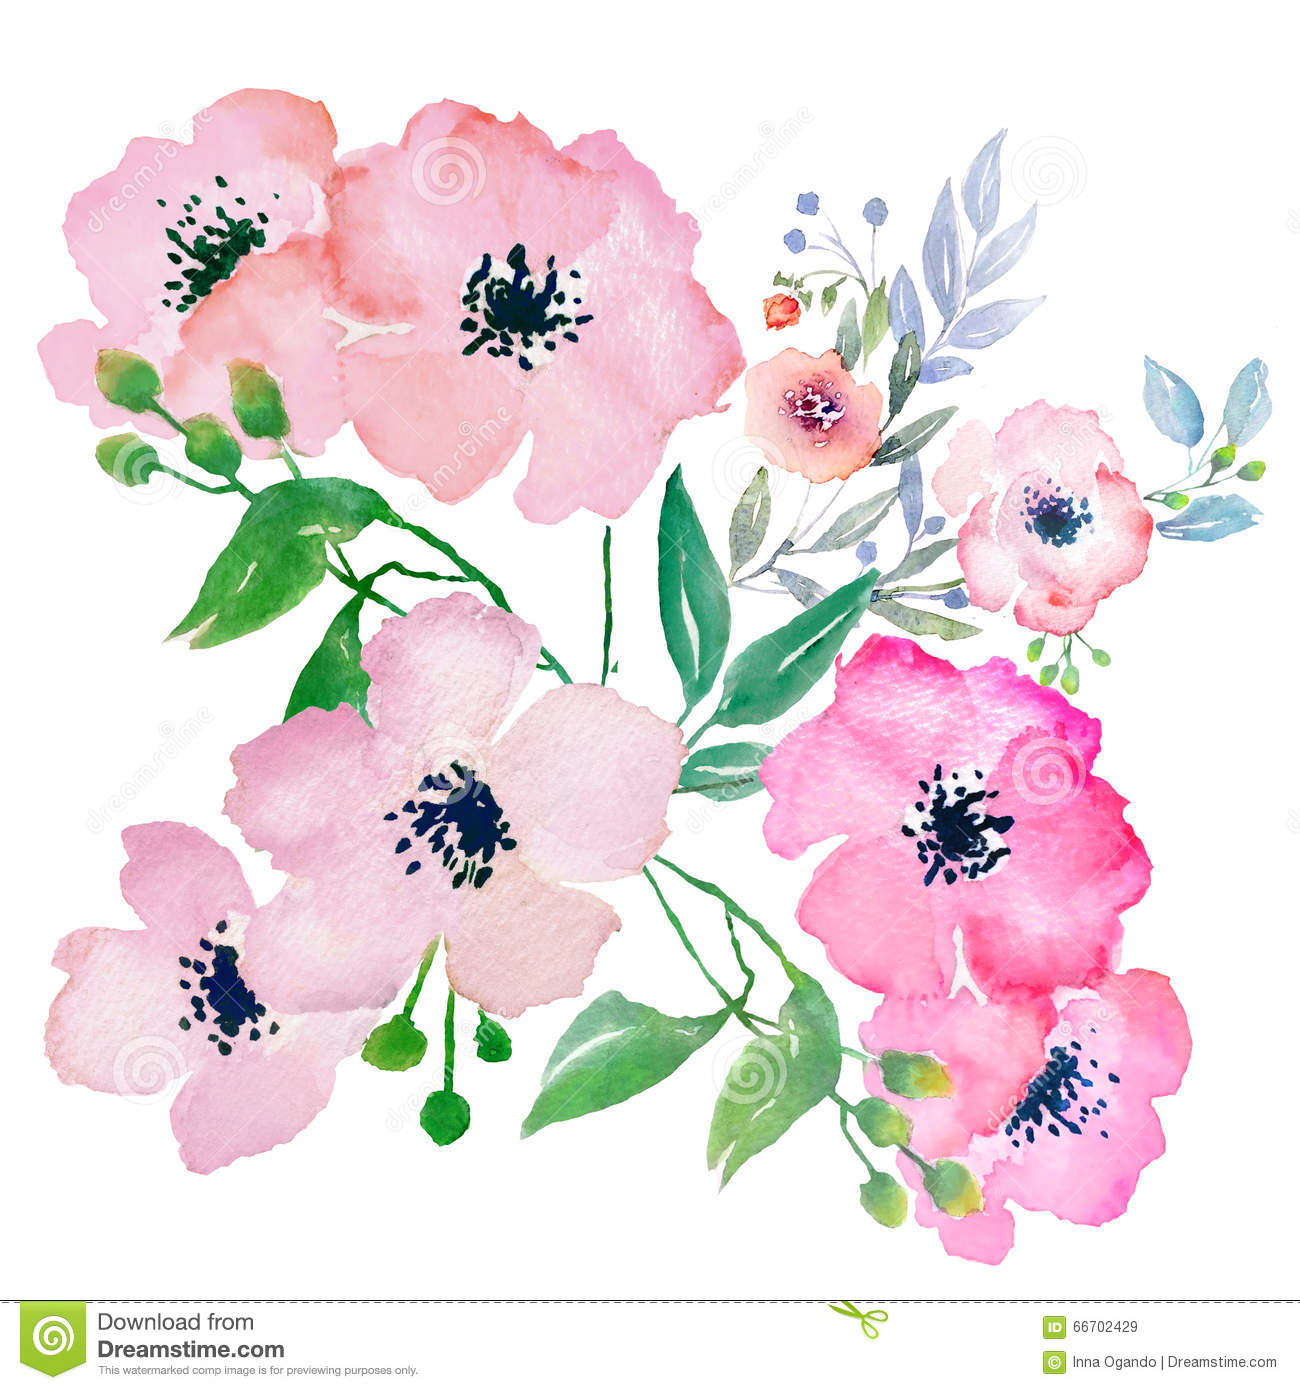 Watercolor flower clipart free clipart freeuse Watercolor Flowers, Clip Art Stock Illustration - Image: 66702429 clipart freeuse